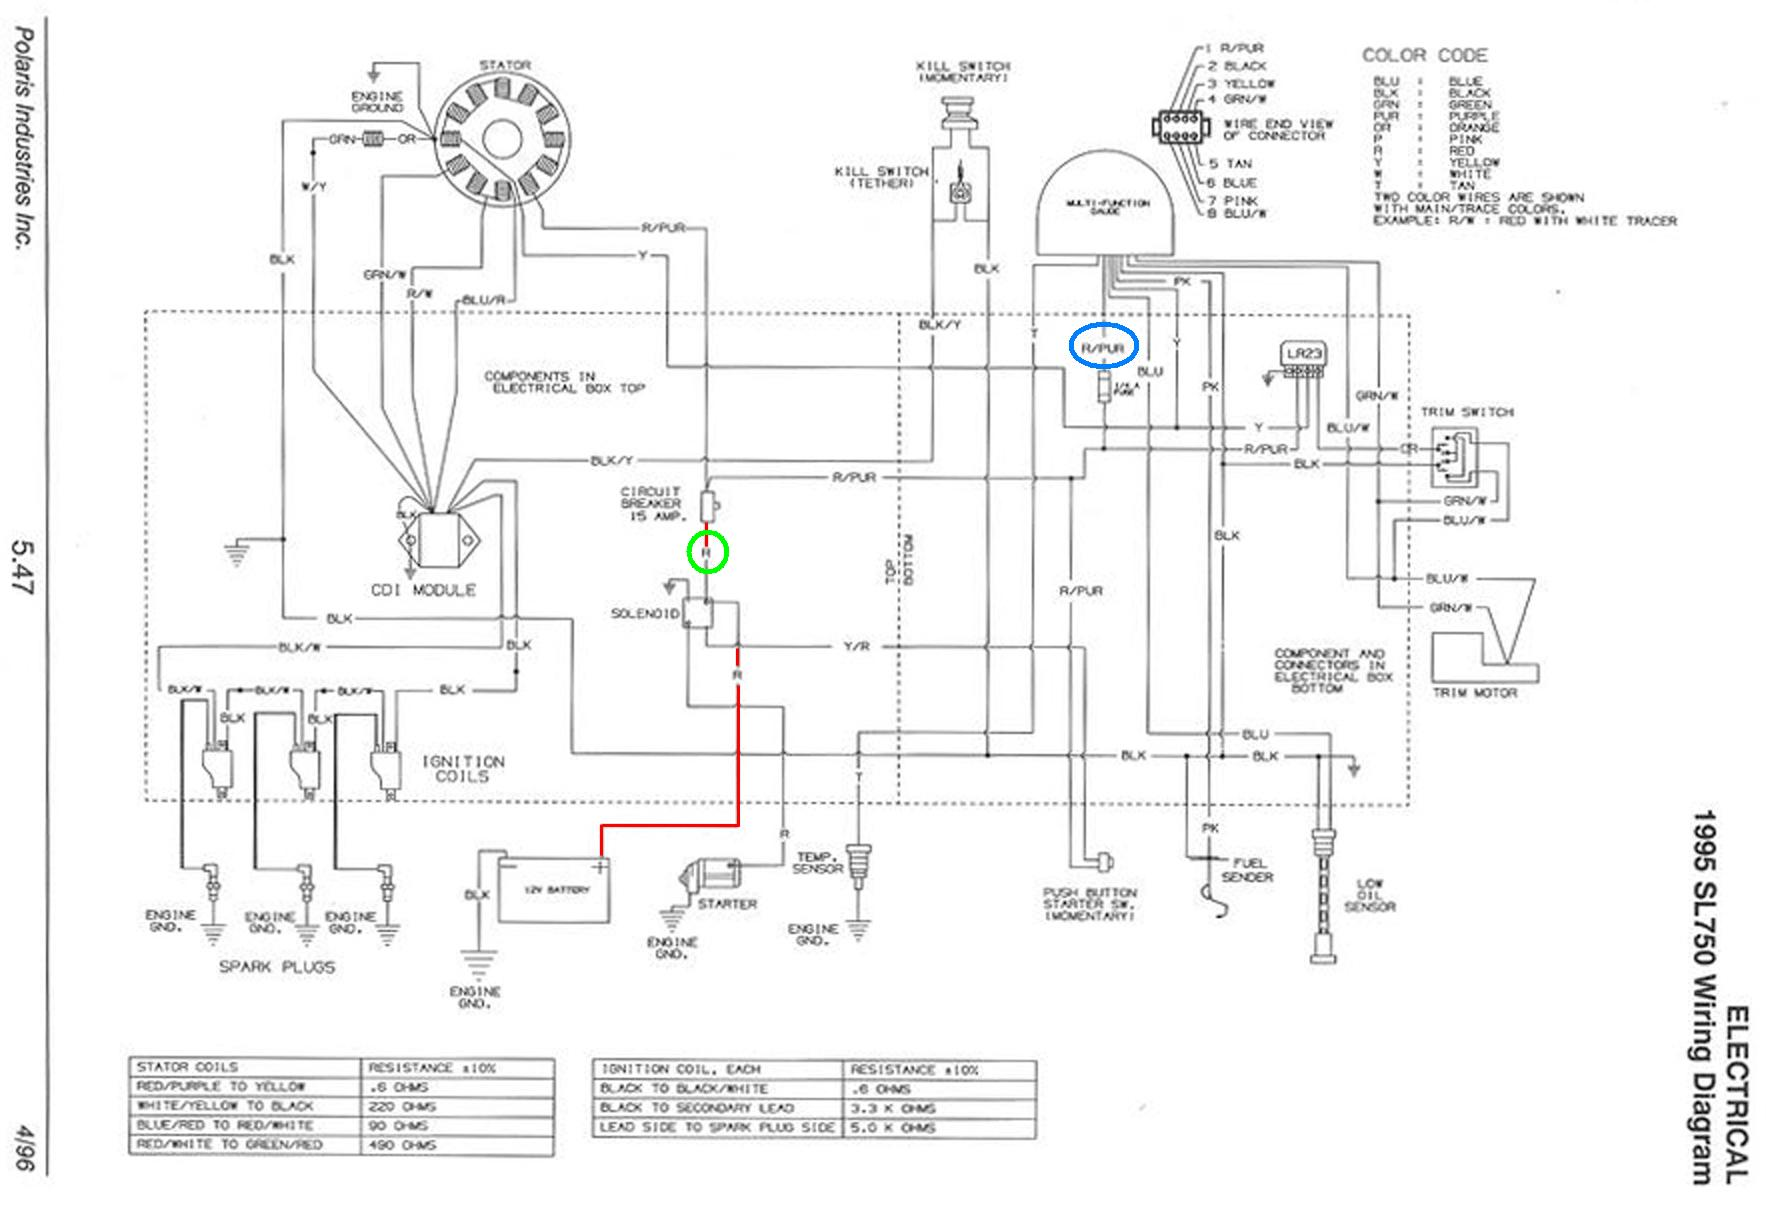 arctic cat 650 v twin wiring diagram wiring diagrams arctic cat 650 v twin wiring diagram digital